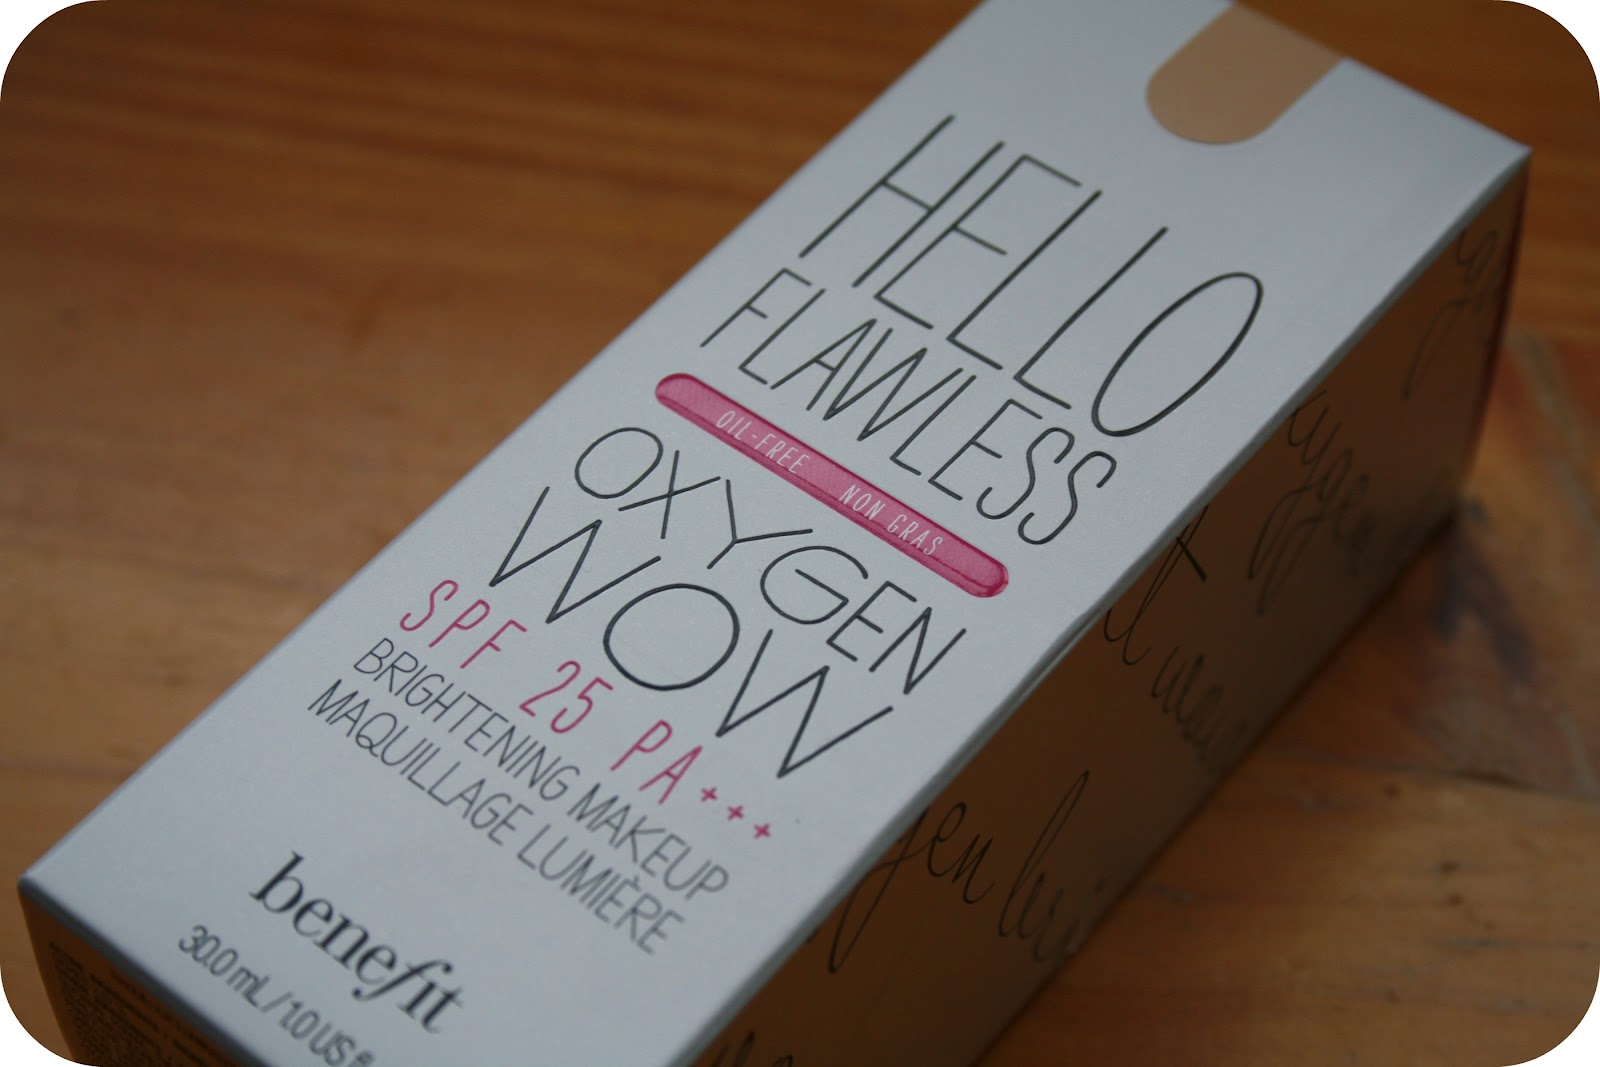 Benefit hello flawless oxygen wow foundation review for Absolutely flawless salon